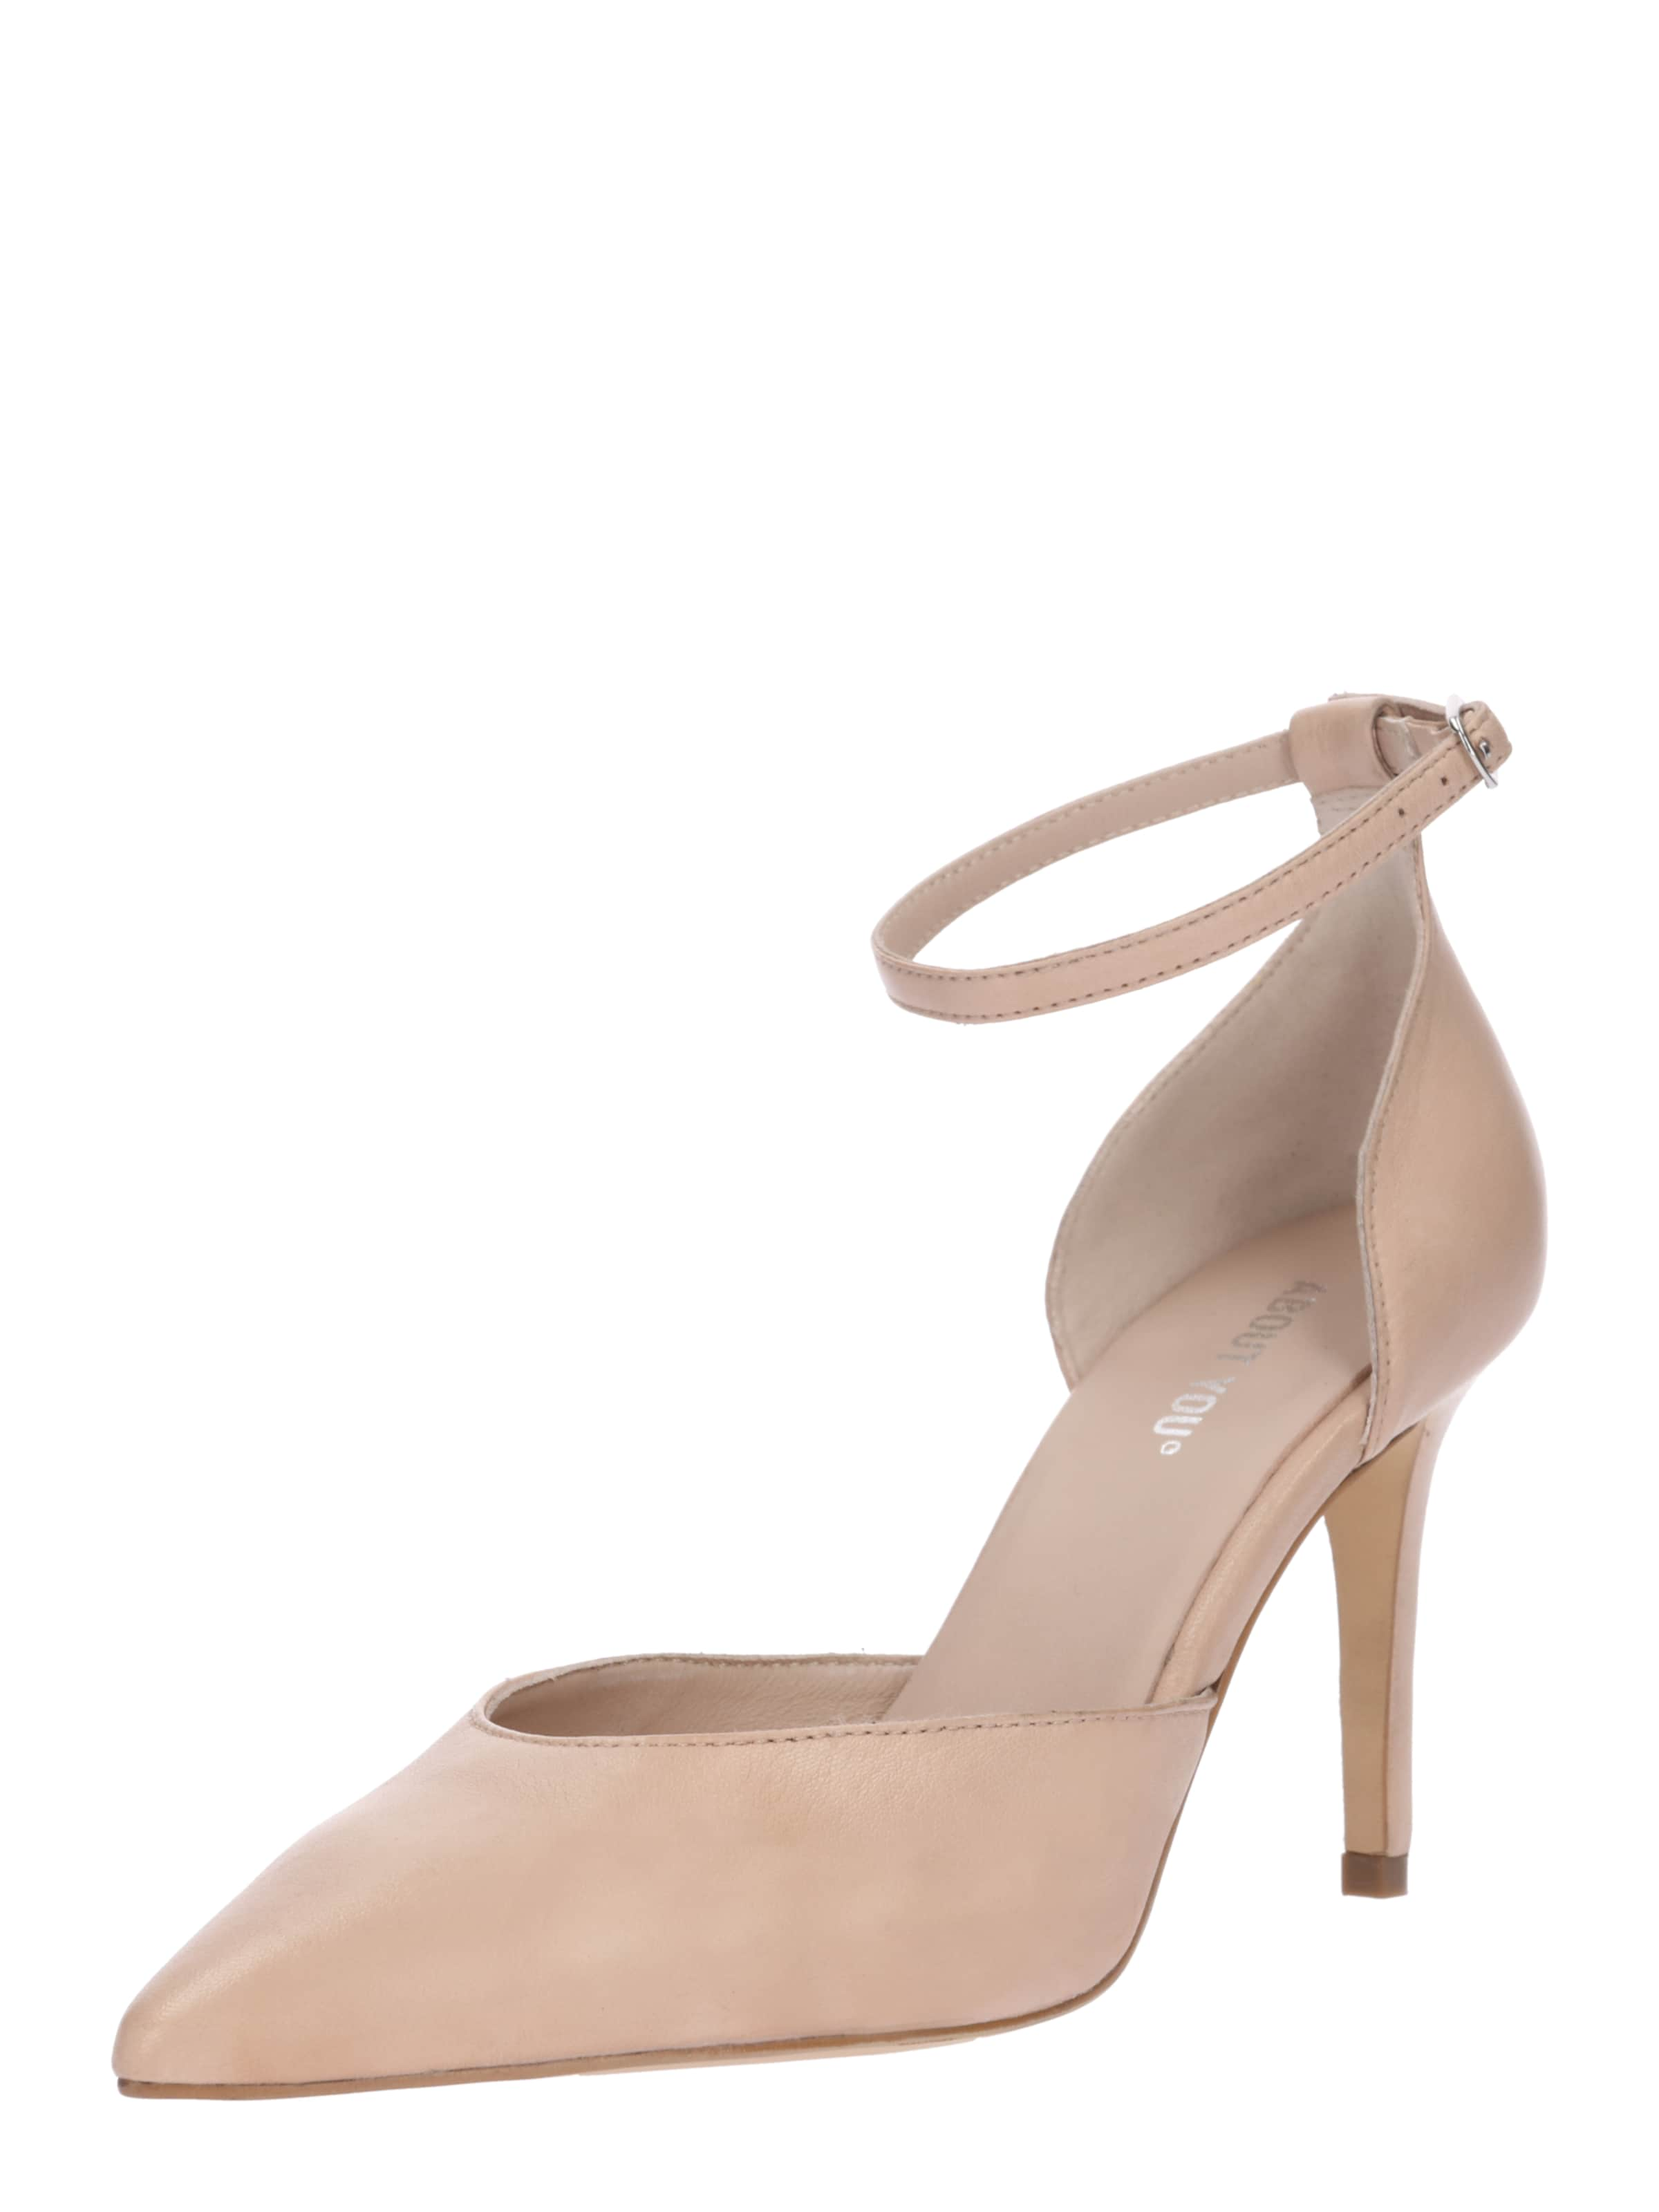 ABOUT YOU  | High Heel Pumps  YOU Aimee d414b1